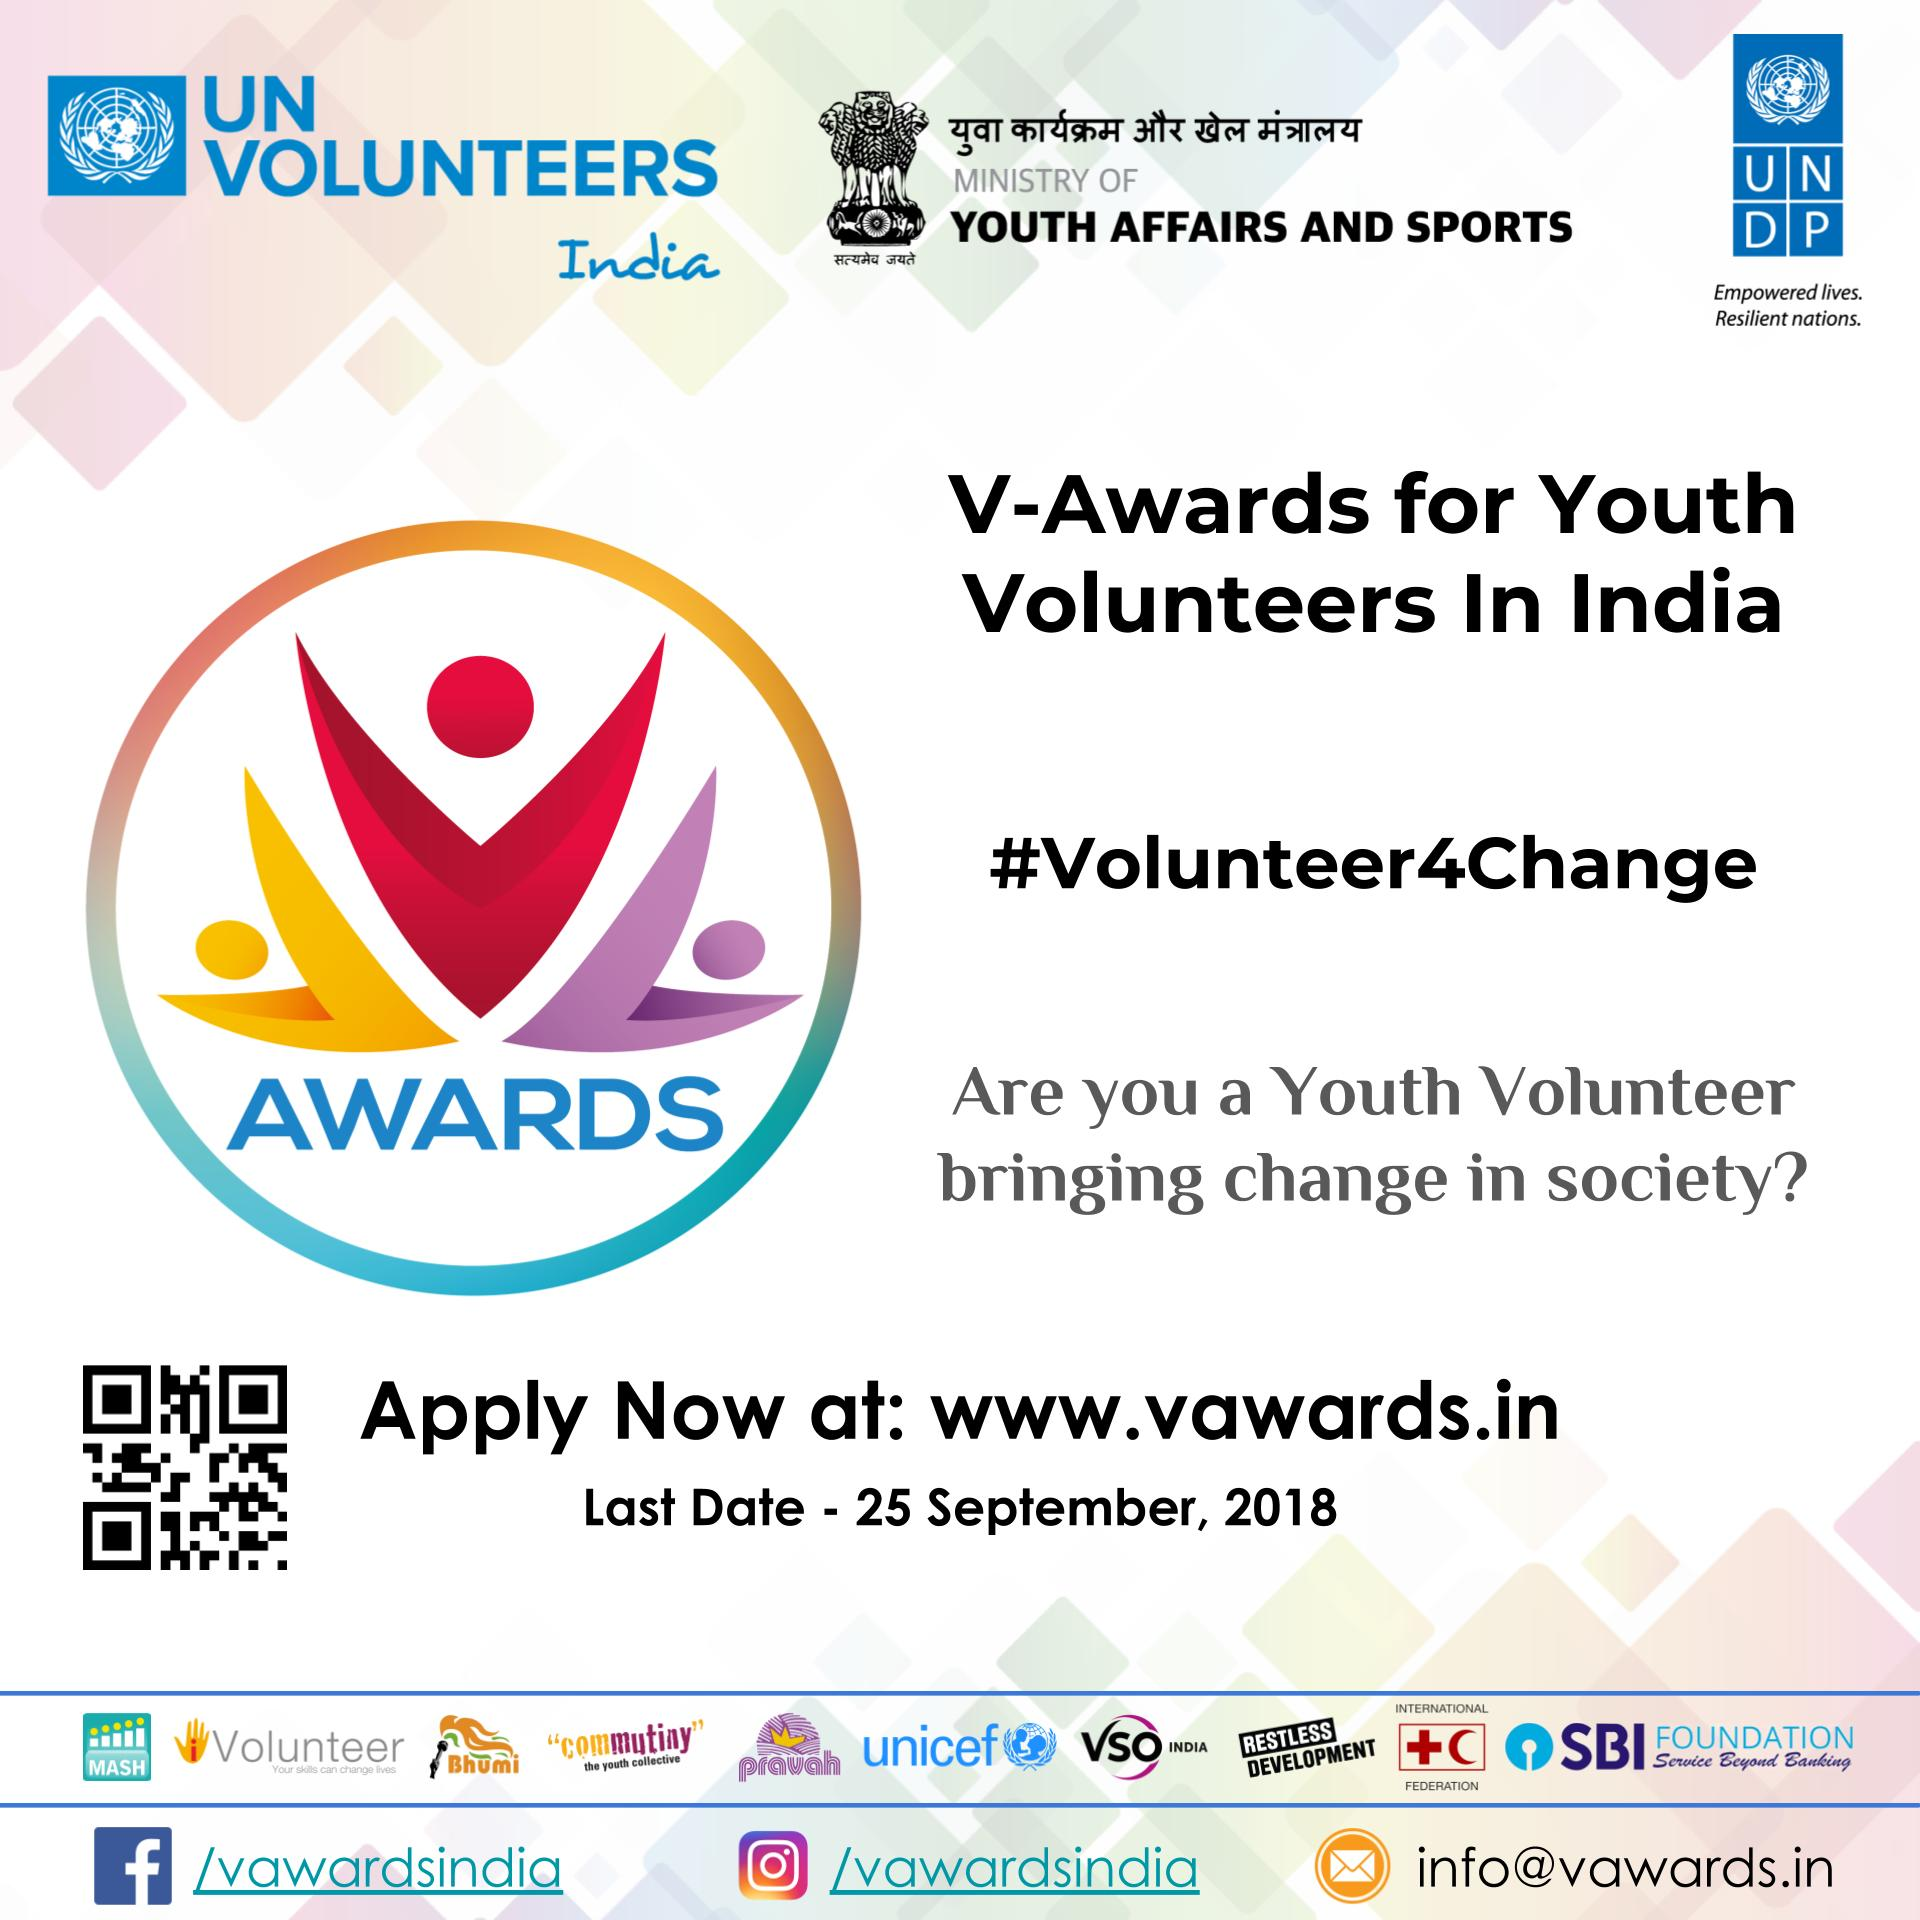 V-Awards in India for Youth